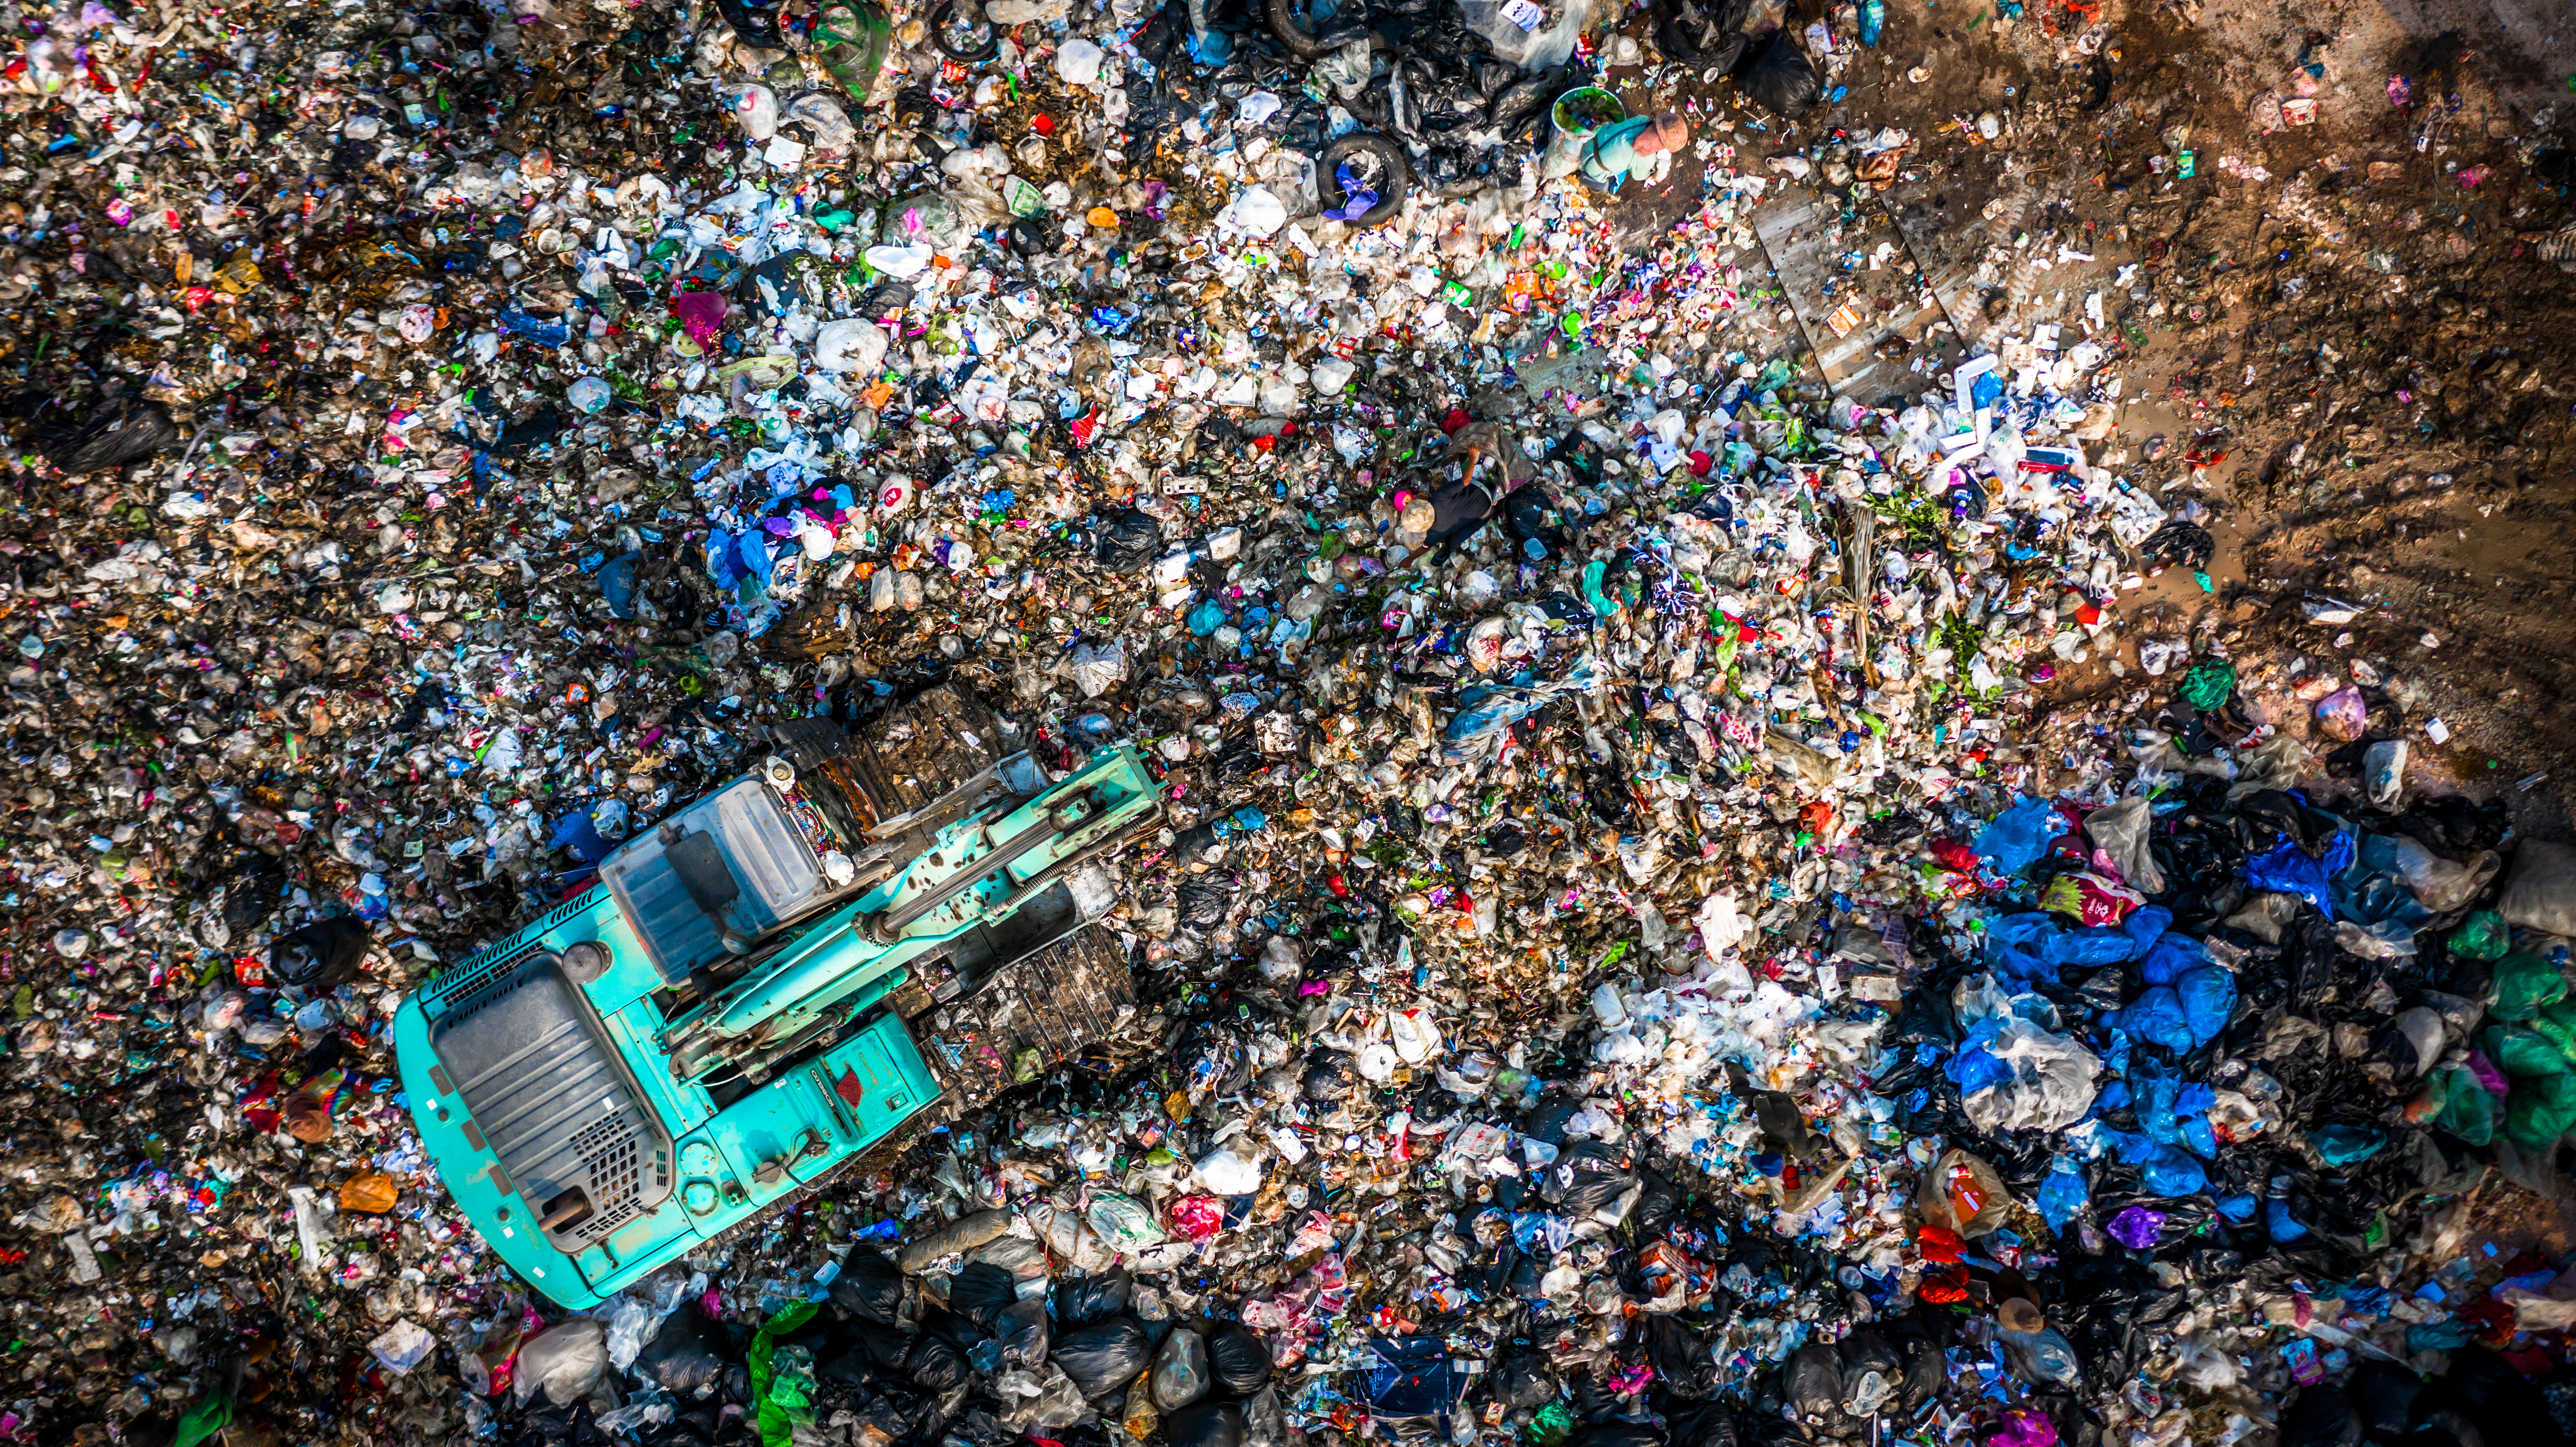 landfill sites are bad for wildlife, nature, environment and global warming